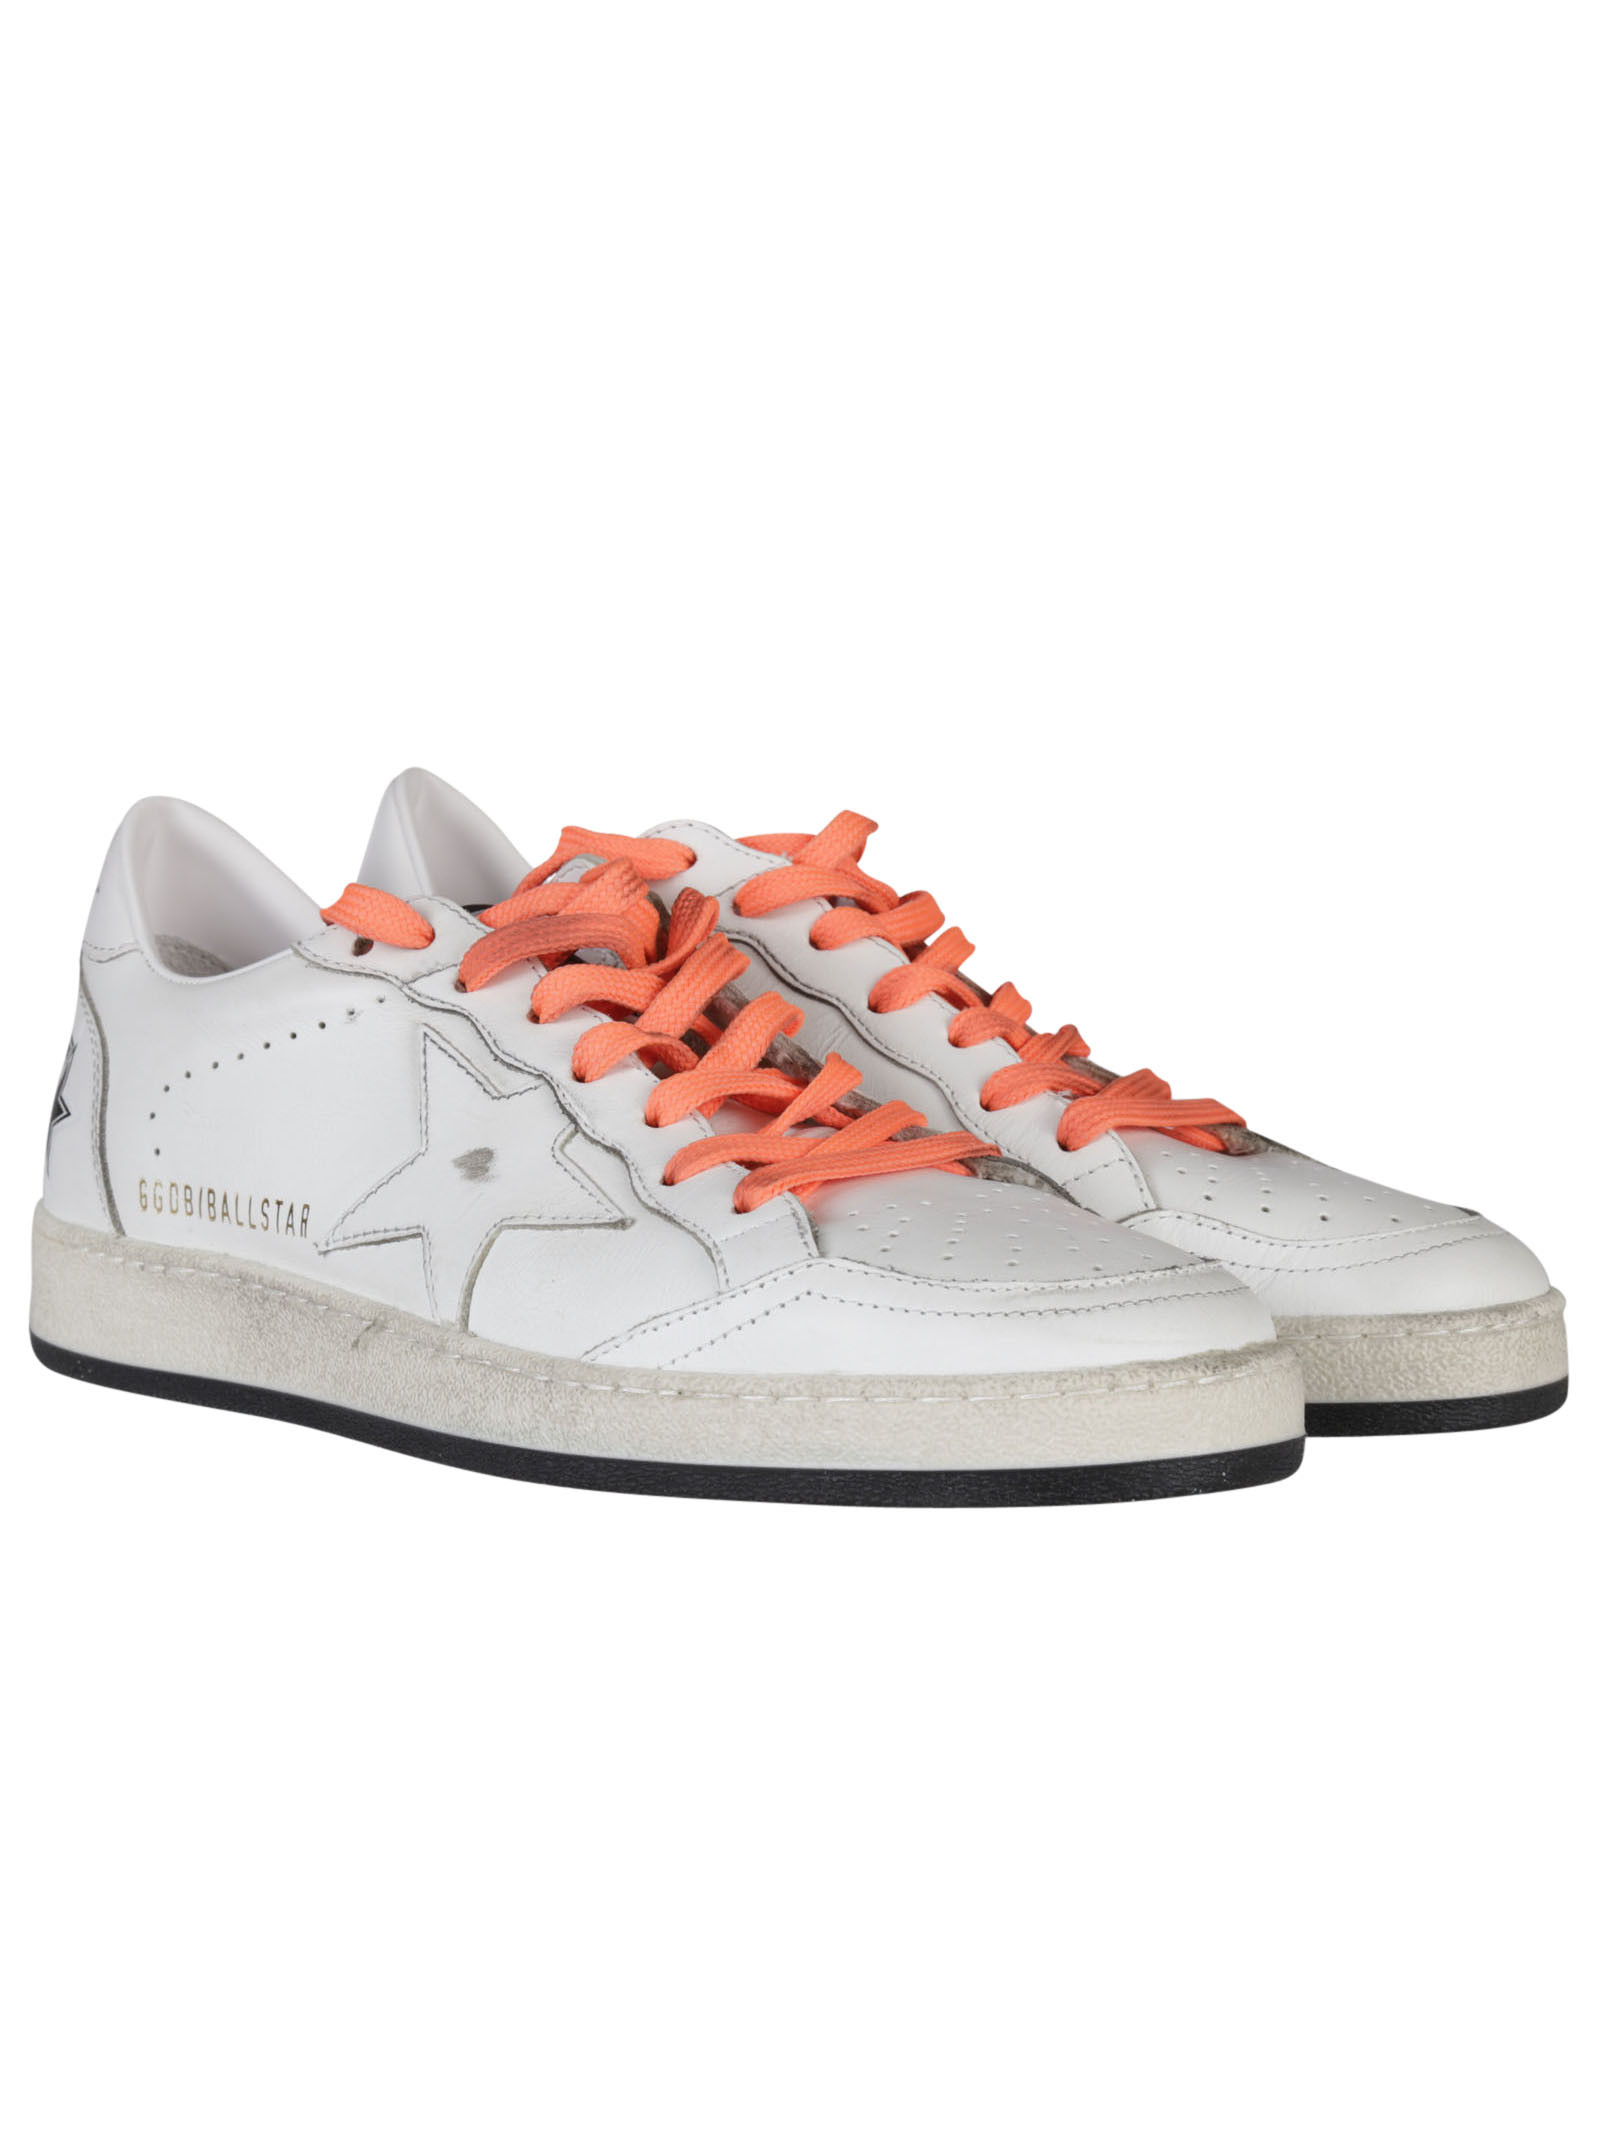 Golden Goose - Golden Goose Deluxe Brand Leather Ball Star Sneakers - G28MS592 C9, Men's ...